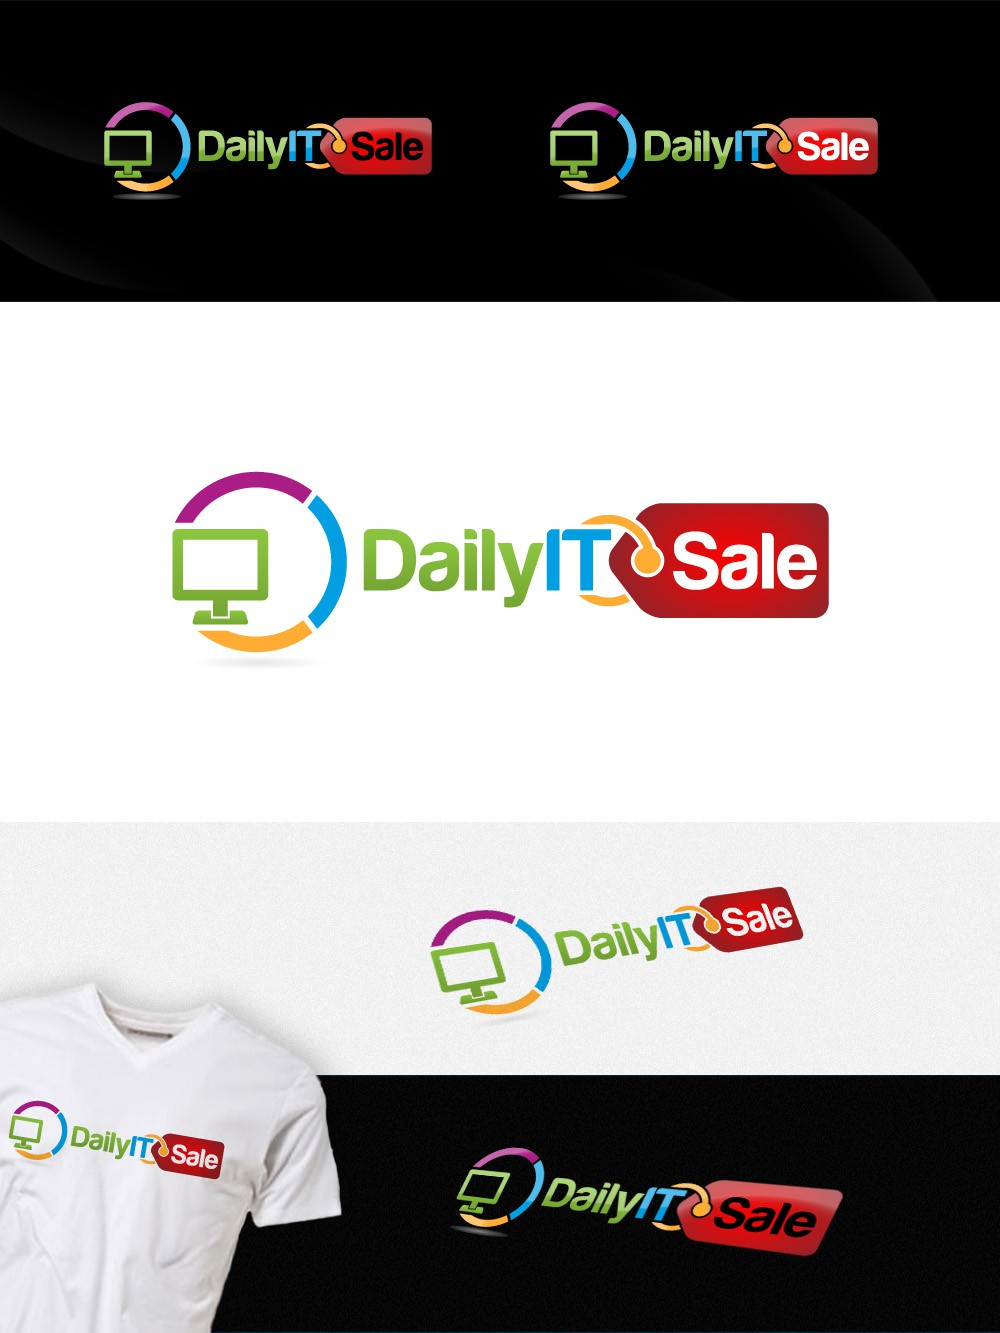 Help Daily IT Sale with a new logo